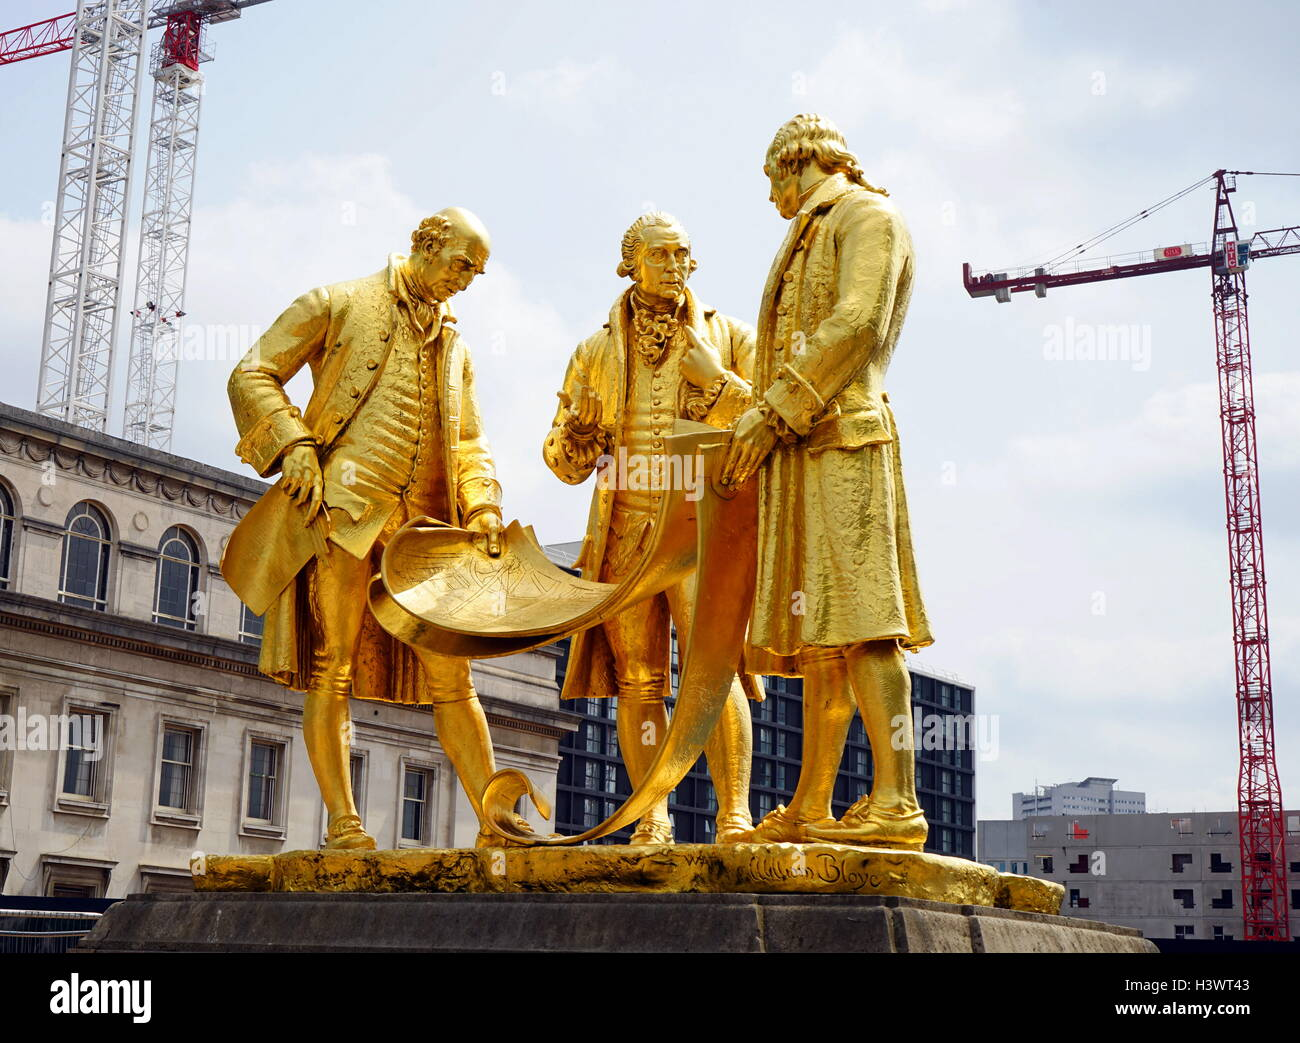 Gold statue titled 'Boulton, Murdoch and Watt' by William Bloye - Stock Image